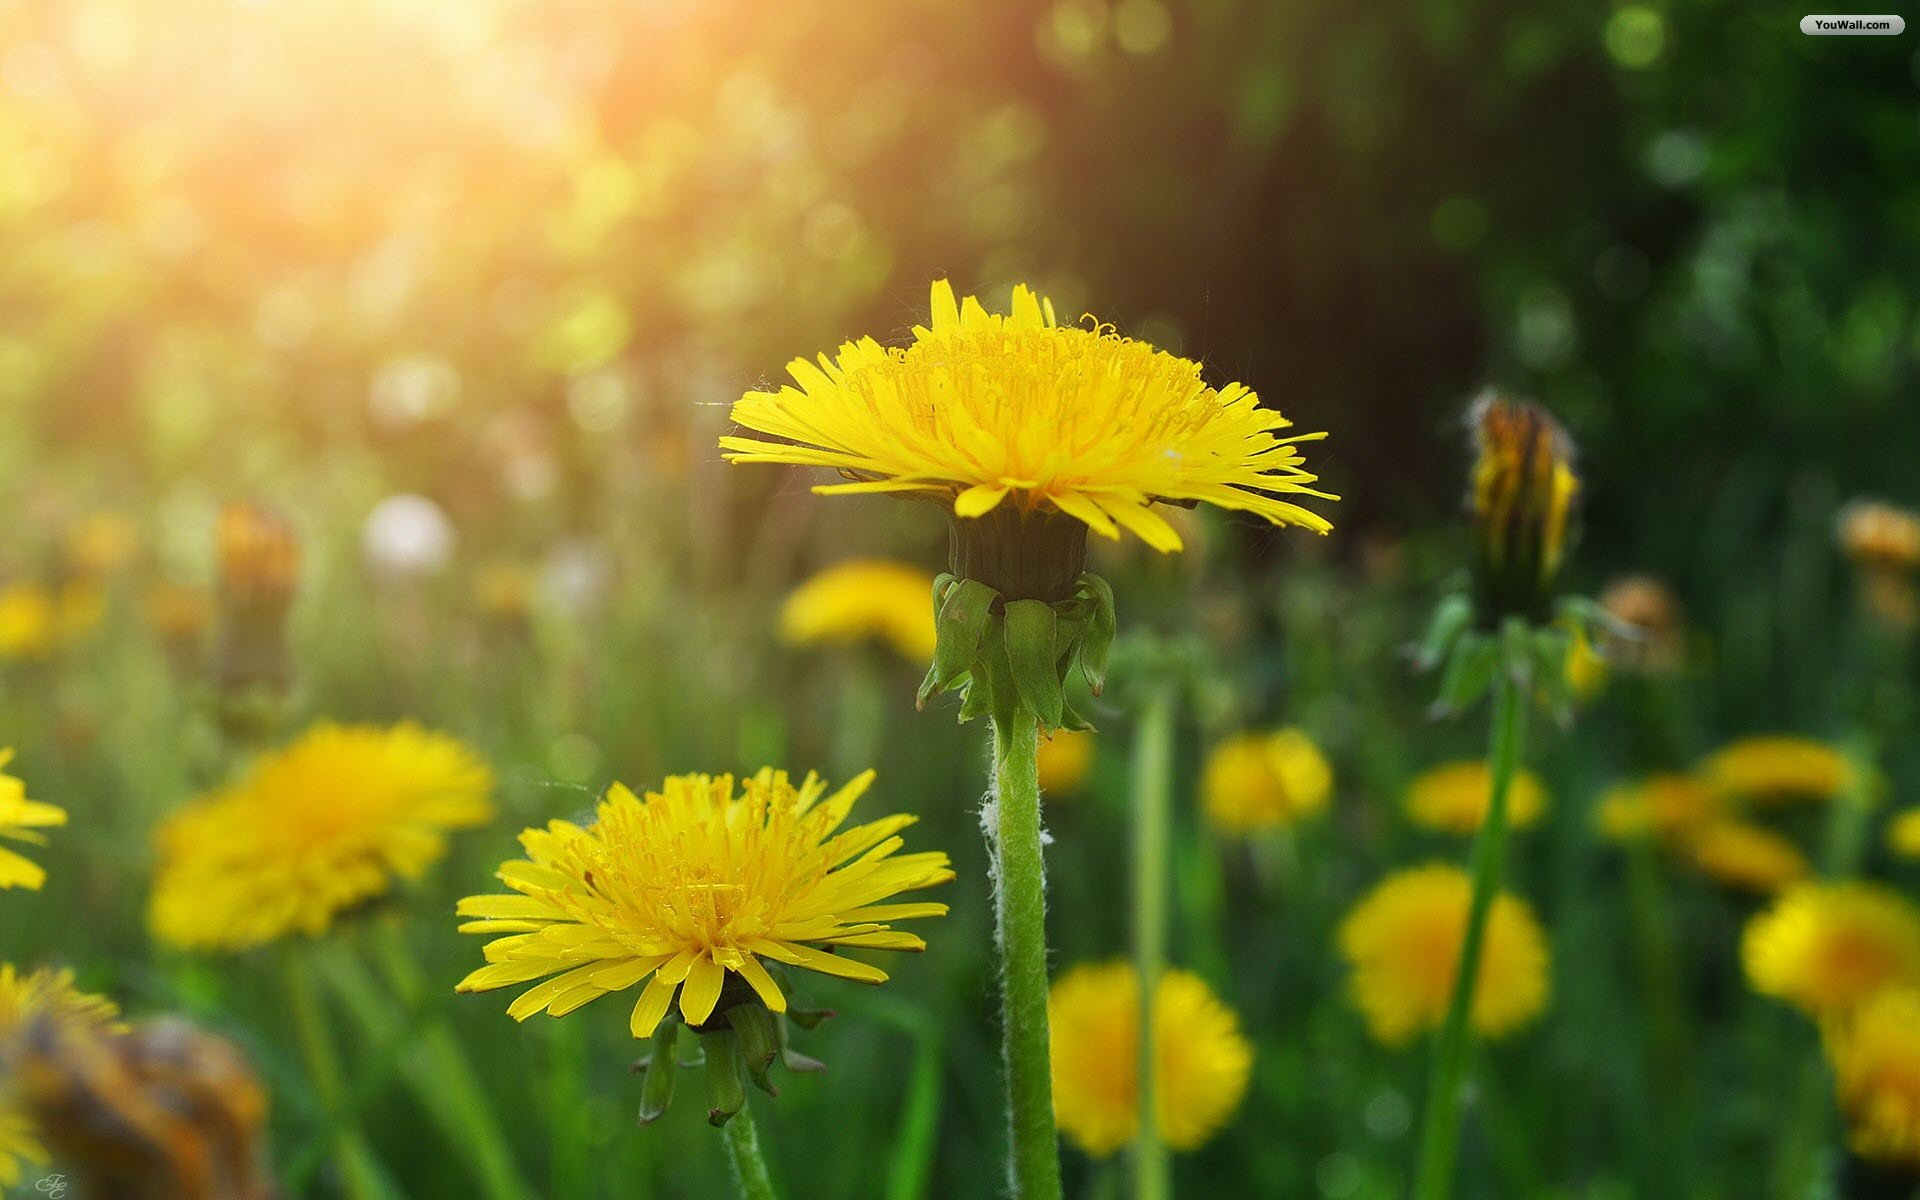 youwallcomwallpapers201208dandelions wallpaperjpg 1920x1200